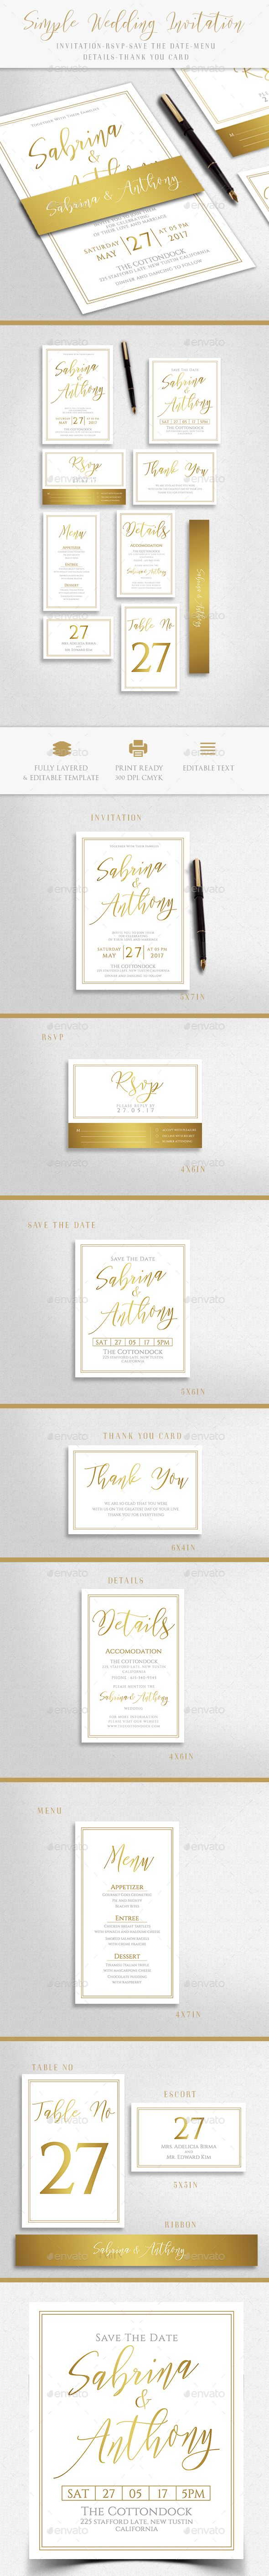 Wedding Invitation Wedding Invitation Card Template Simple Invitation Wedding Card Templates